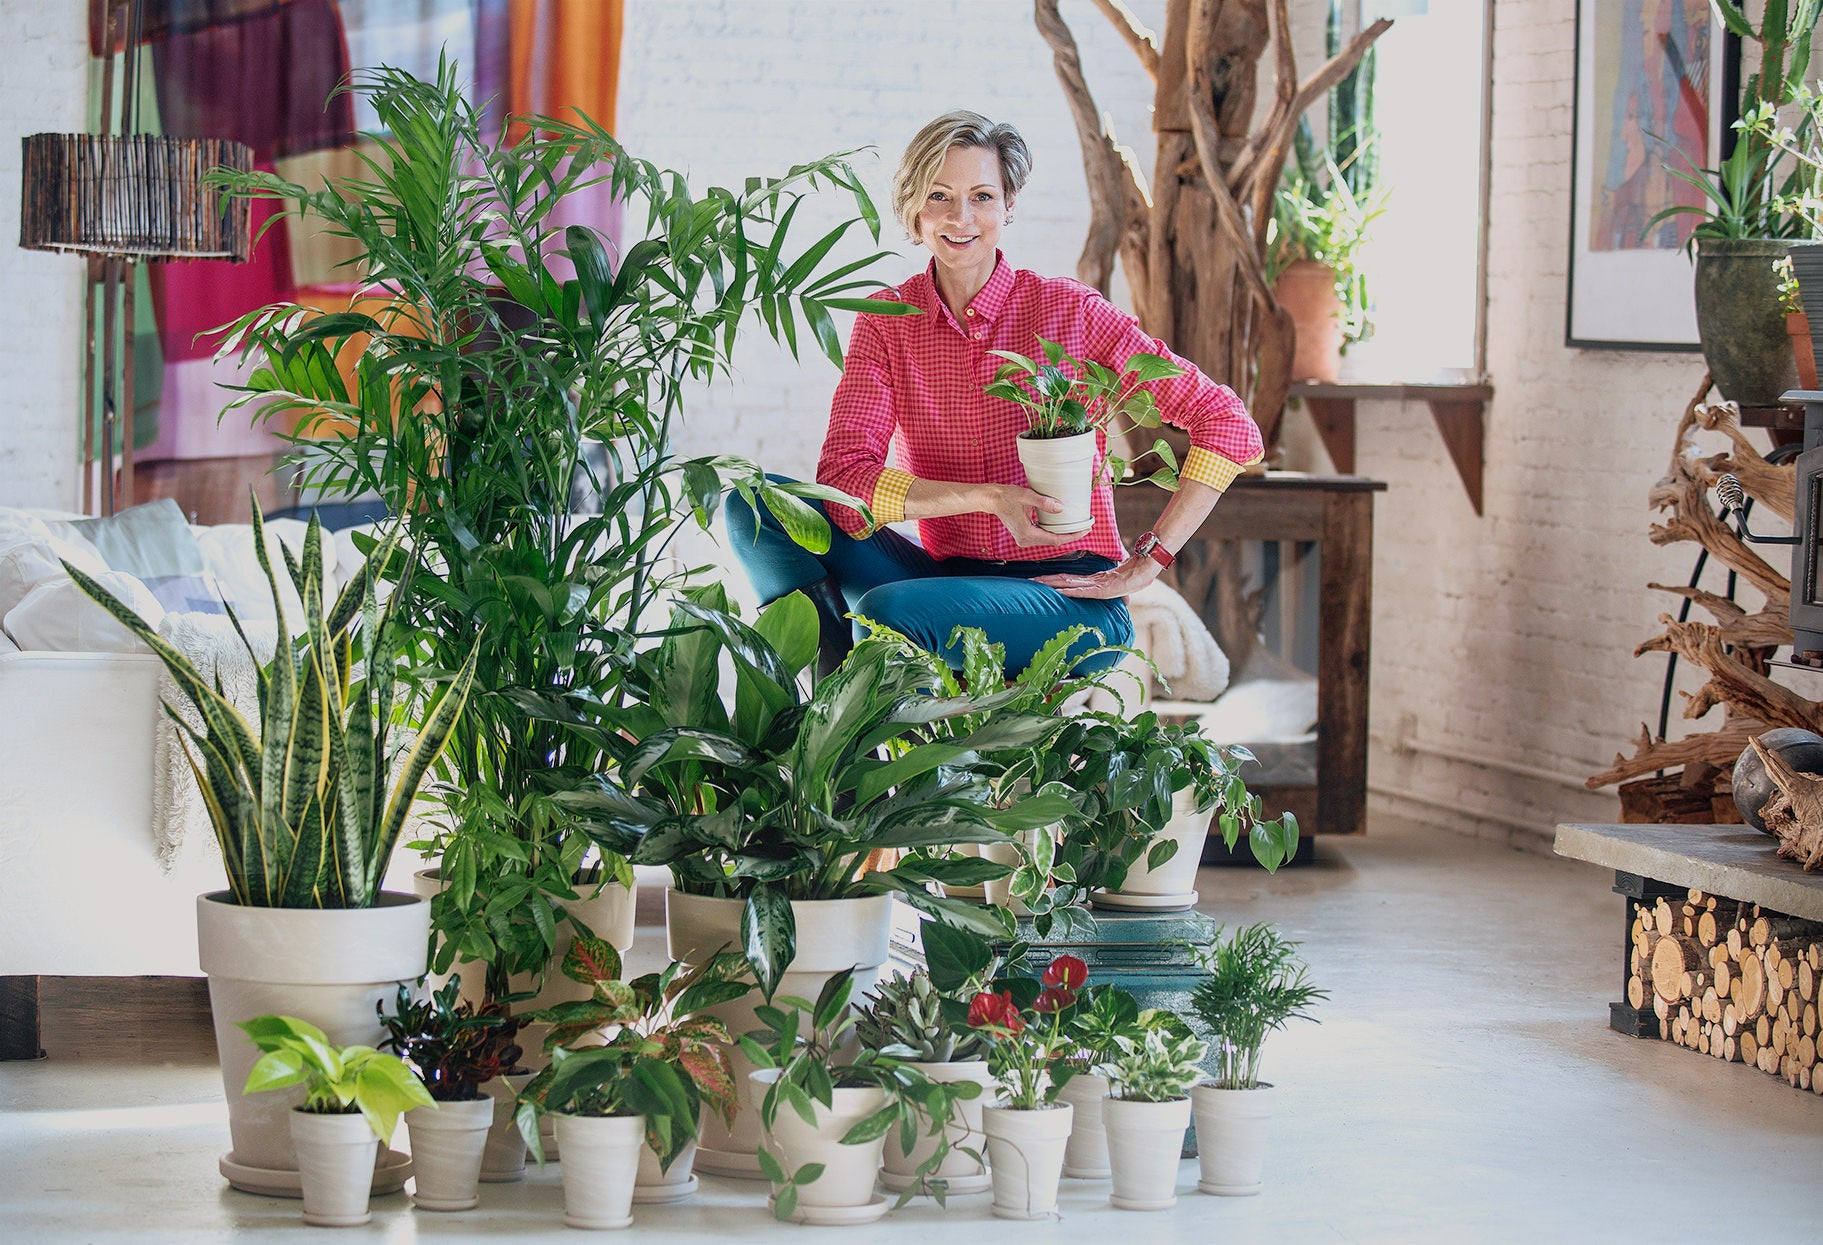 Houseplant Delivery NYC - Plant Shop In New York - Order Plants Online